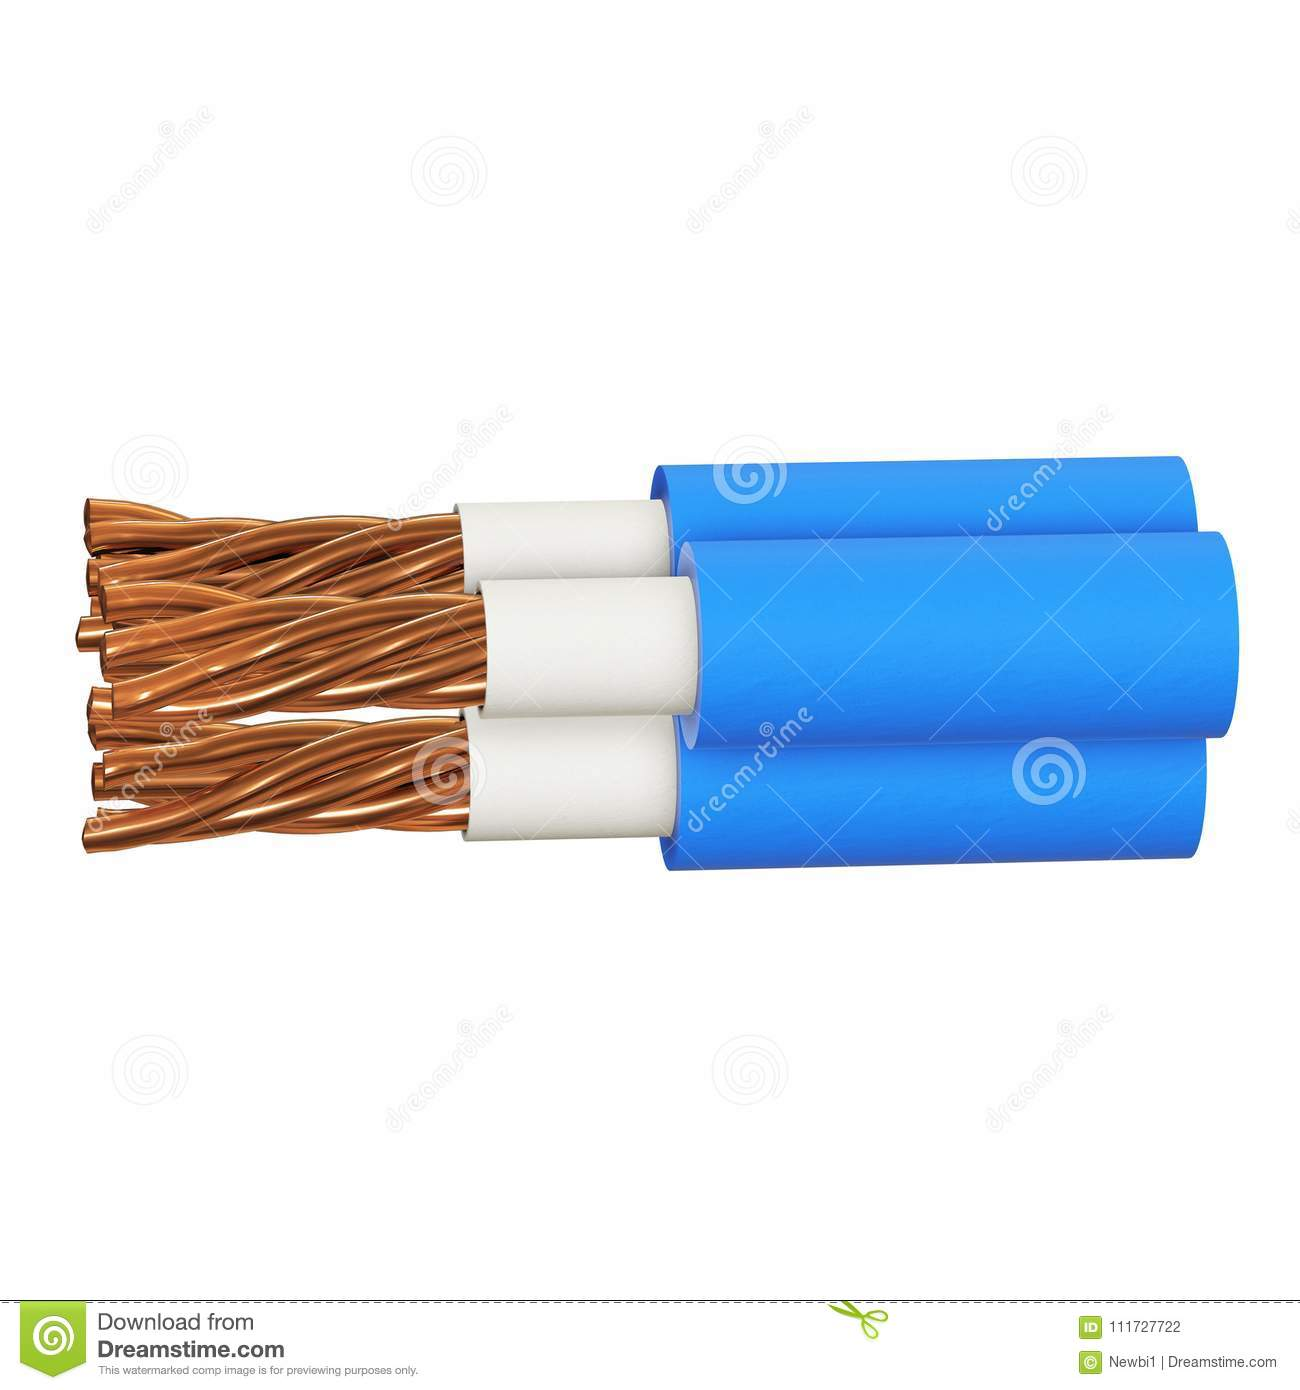 Copper electrical cable 3d stock illustration. Illustration of ...